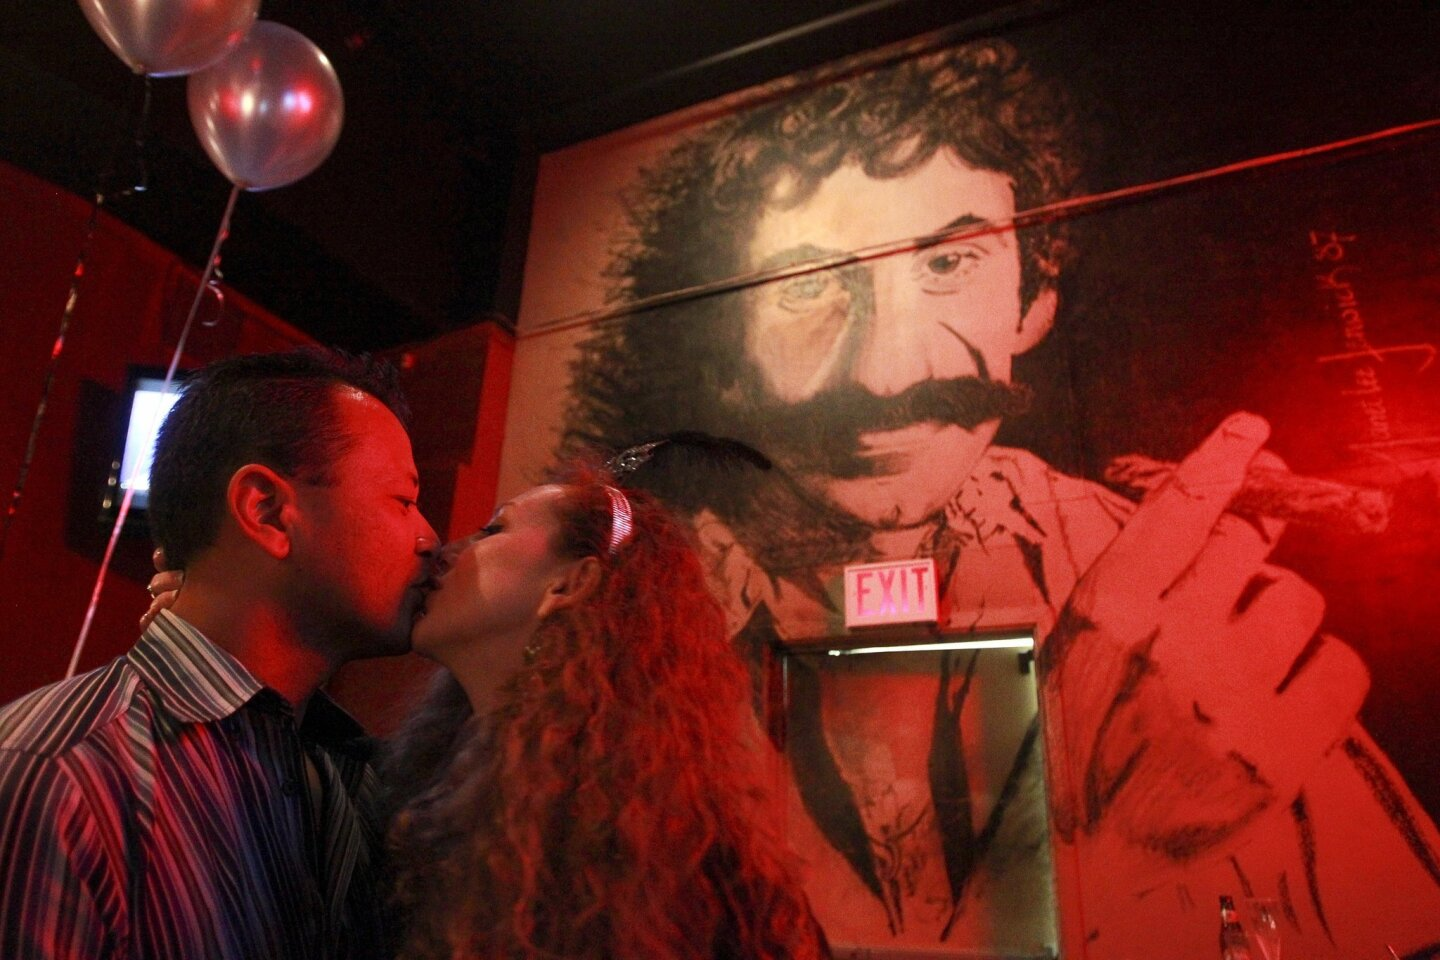 Ian Tashima and Vanessa Robbins kiss while under the large mural of singer and songwriter Jim Croce at Croce's Restaurant & Jazz Bar, which after 30 years closed its doors permanently on New Year's Day in the Gaslamp Quarter.